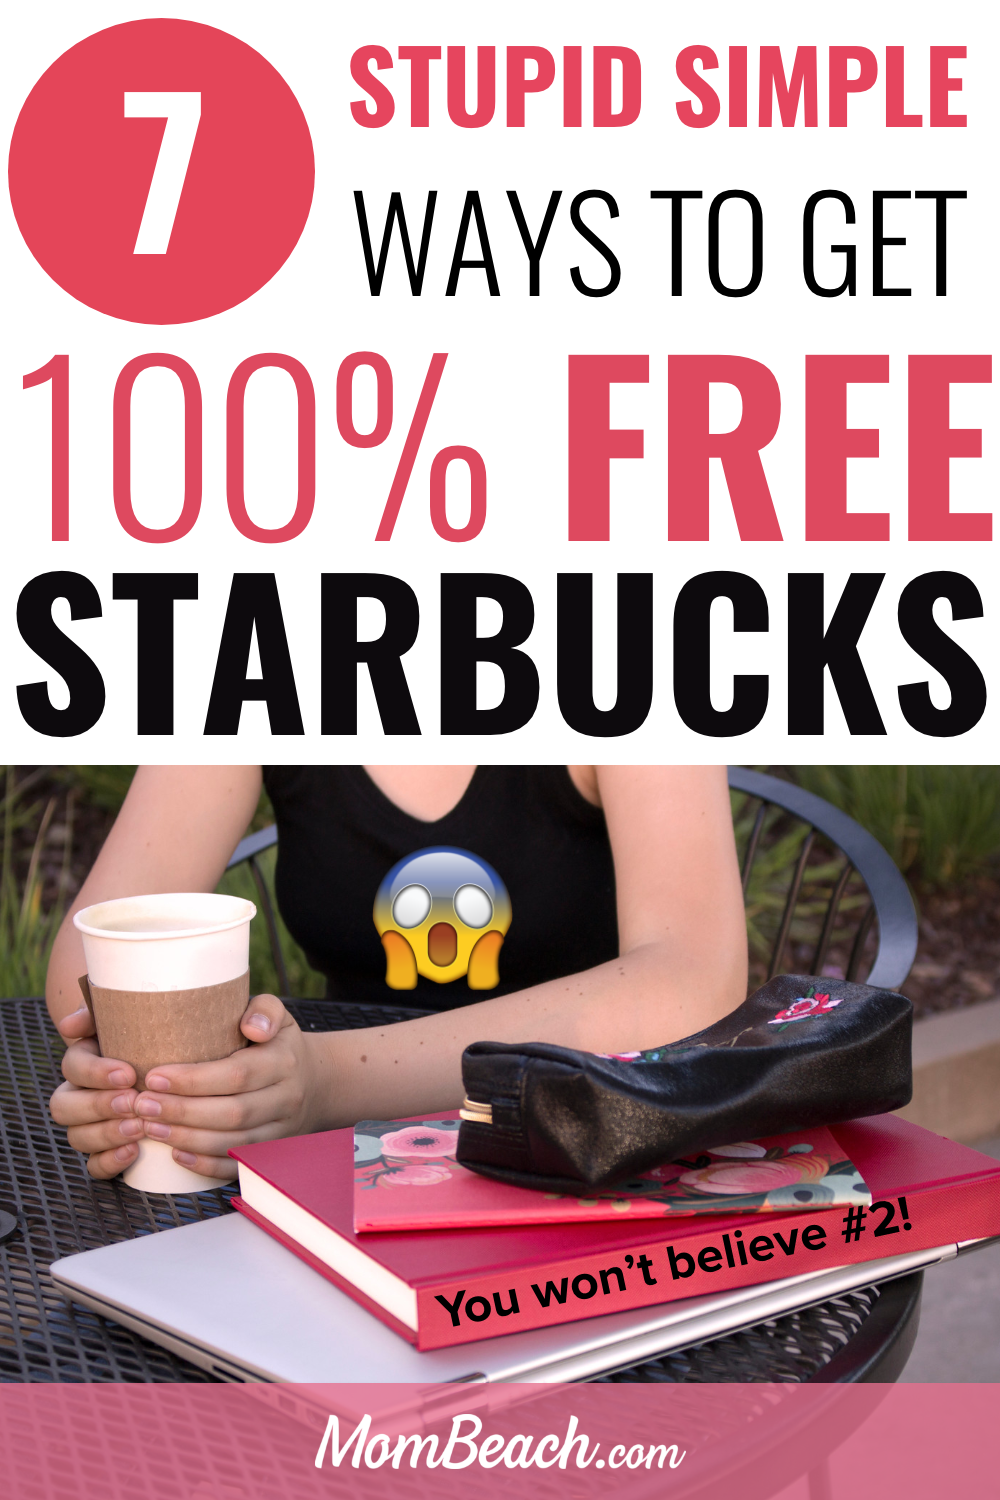 Holy mother of Joe! Did you know that you can get free Starbucks drinks?! It's true! You won't believe how stupid simple it is to get free Starbucks gift cards and promo codes. I tell you how to get free Starbucks quick and easy. #freestarbucksdrinks #freestarbucks #howtogetfreestarbucks #freestarbucksgiftcards #freestarbuckscodes #freestarbucksproducts